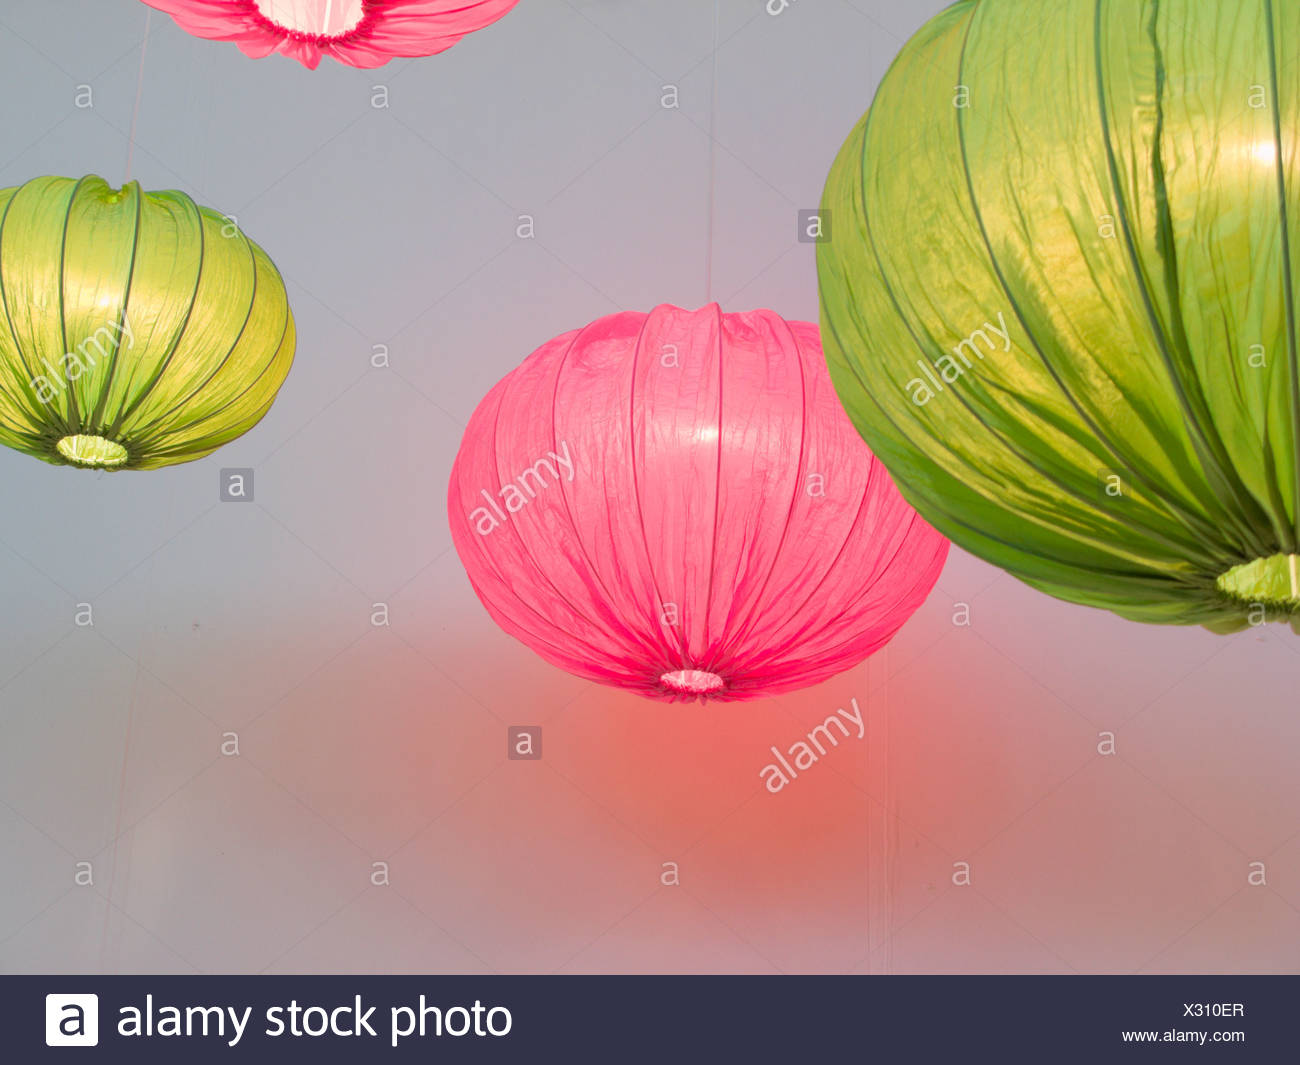 Pink and green ceiling lamps, Sweden. - Stock Image